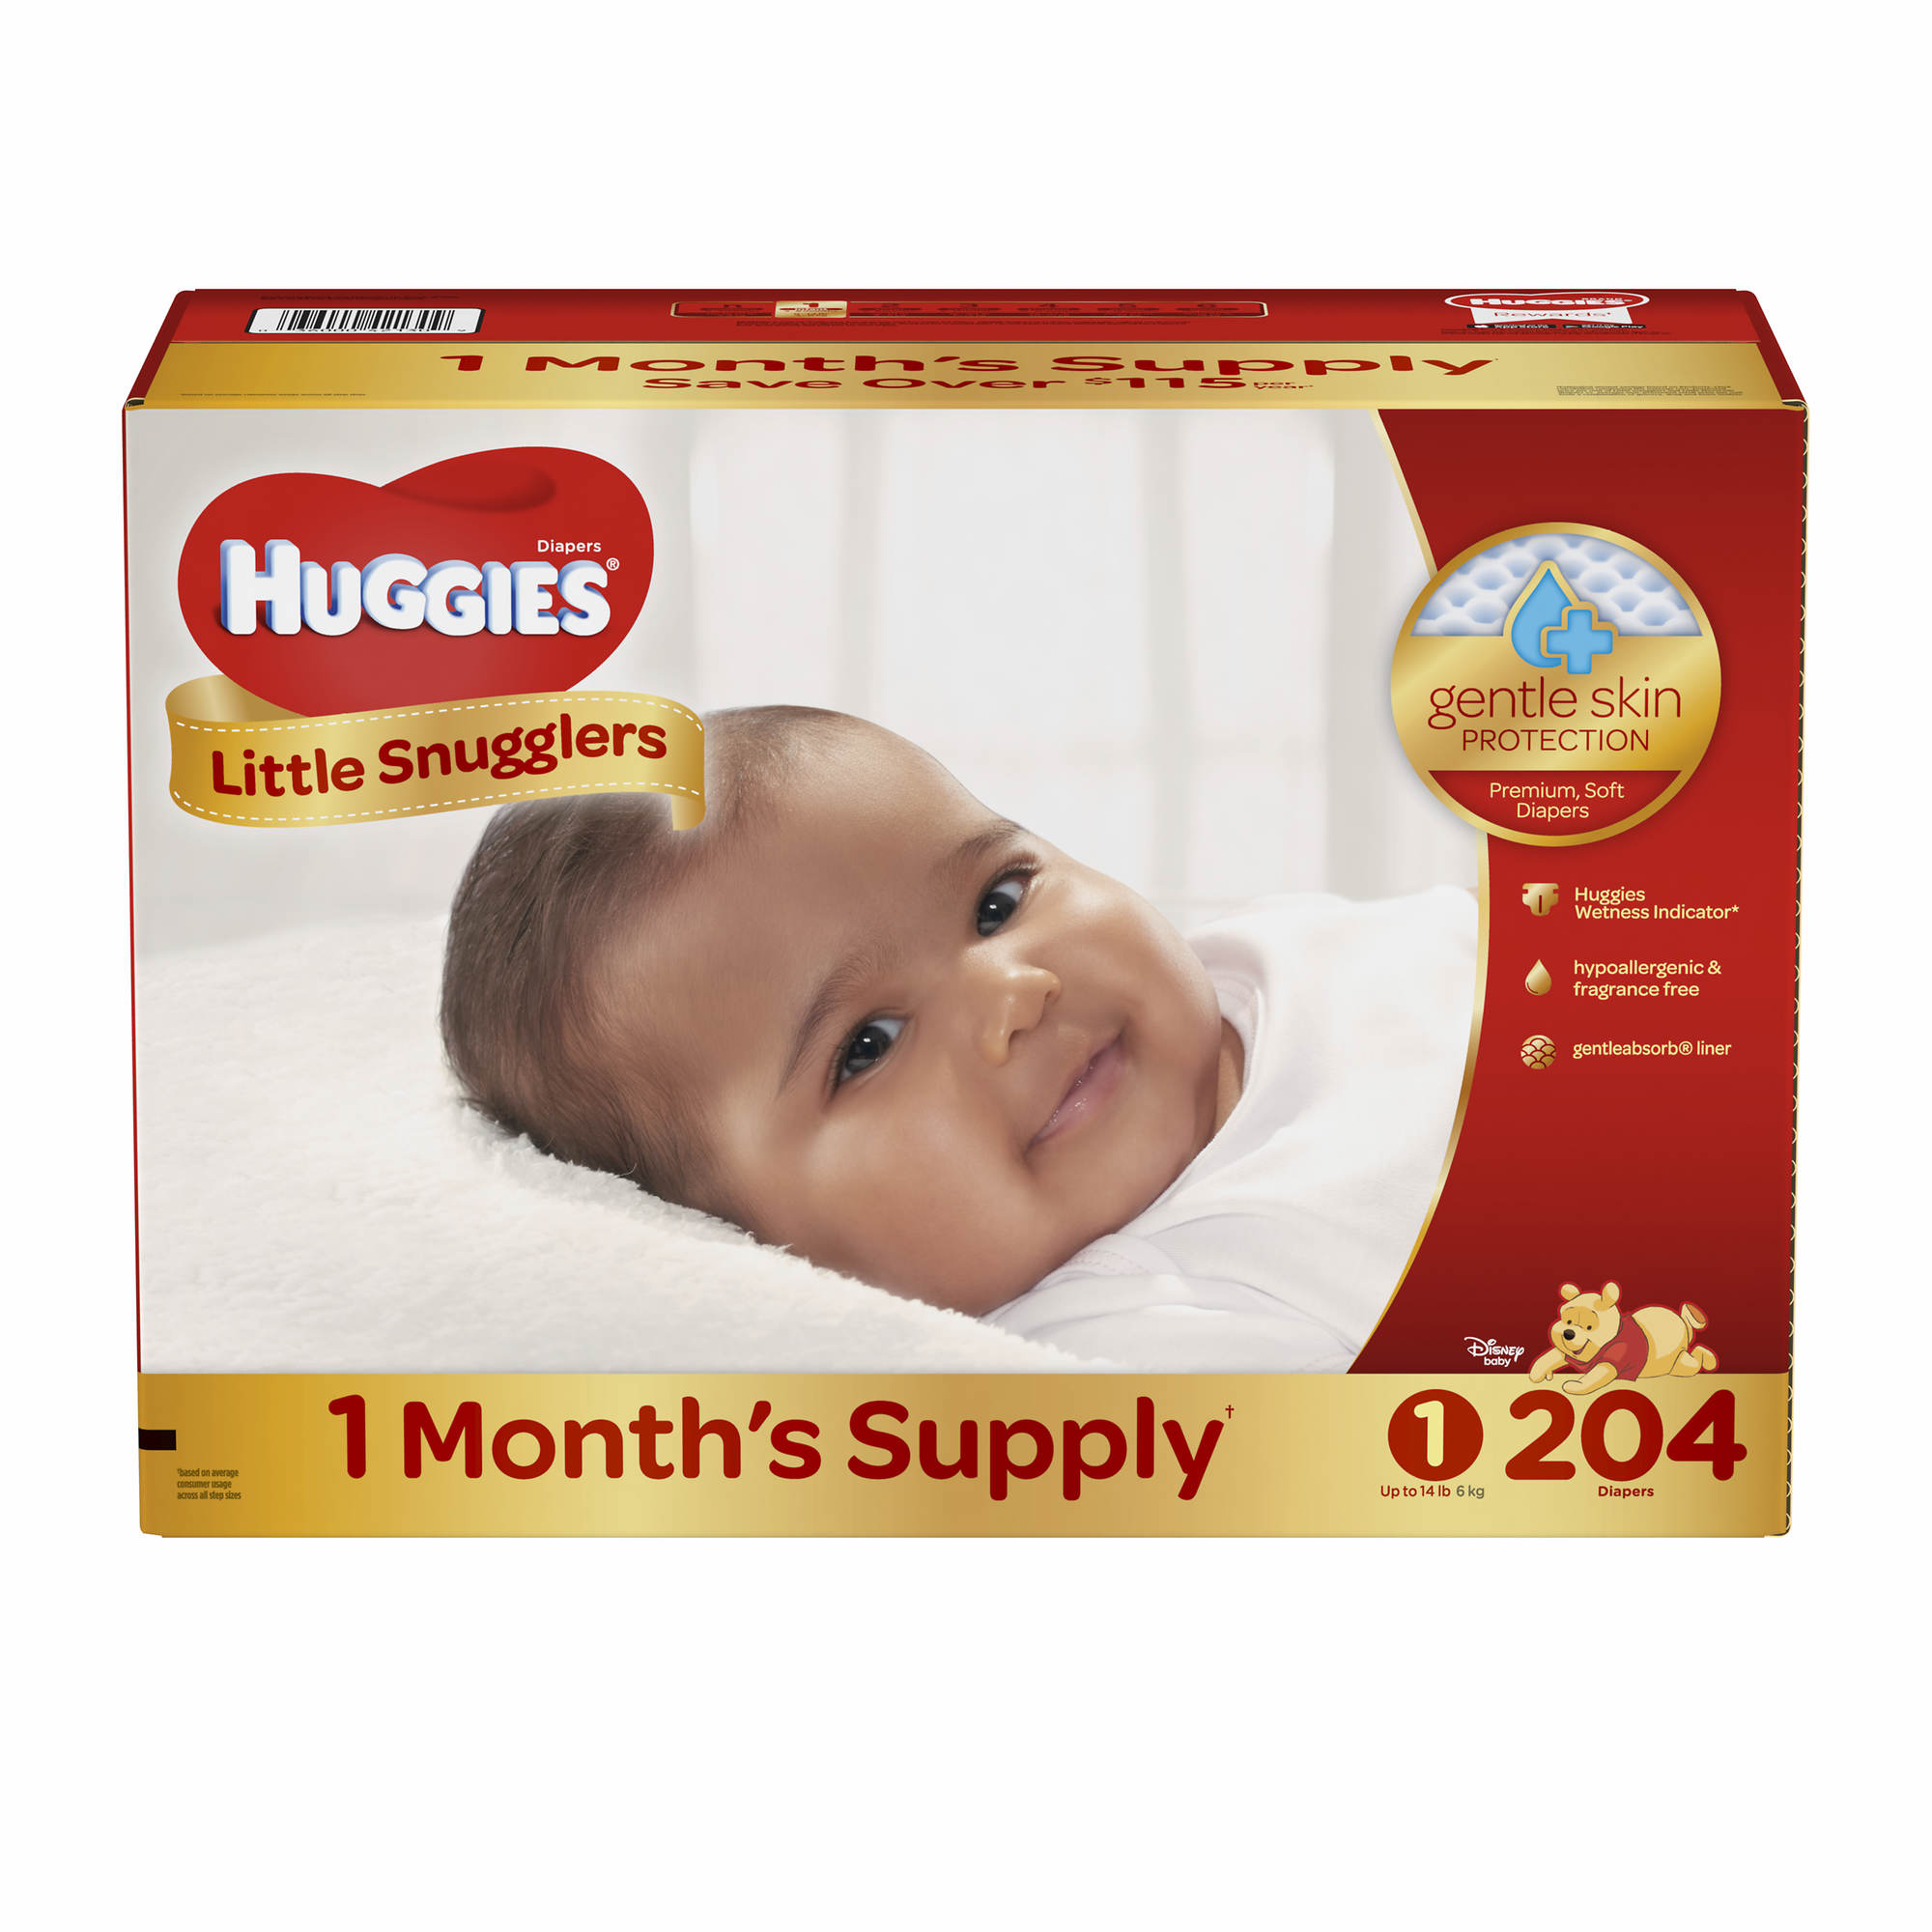 Kimberly-Clark Huggies Little Snugglers Baby Diapers, Size 1, Count Huggies Little Snugglers diapers are specially designed for gentle skin protection. With features like the pocketed-back waistband and GentleAbsorb liner that contain and draw the mess away, Little Snugglers help keep your baby's delicate skin clean and healthy.